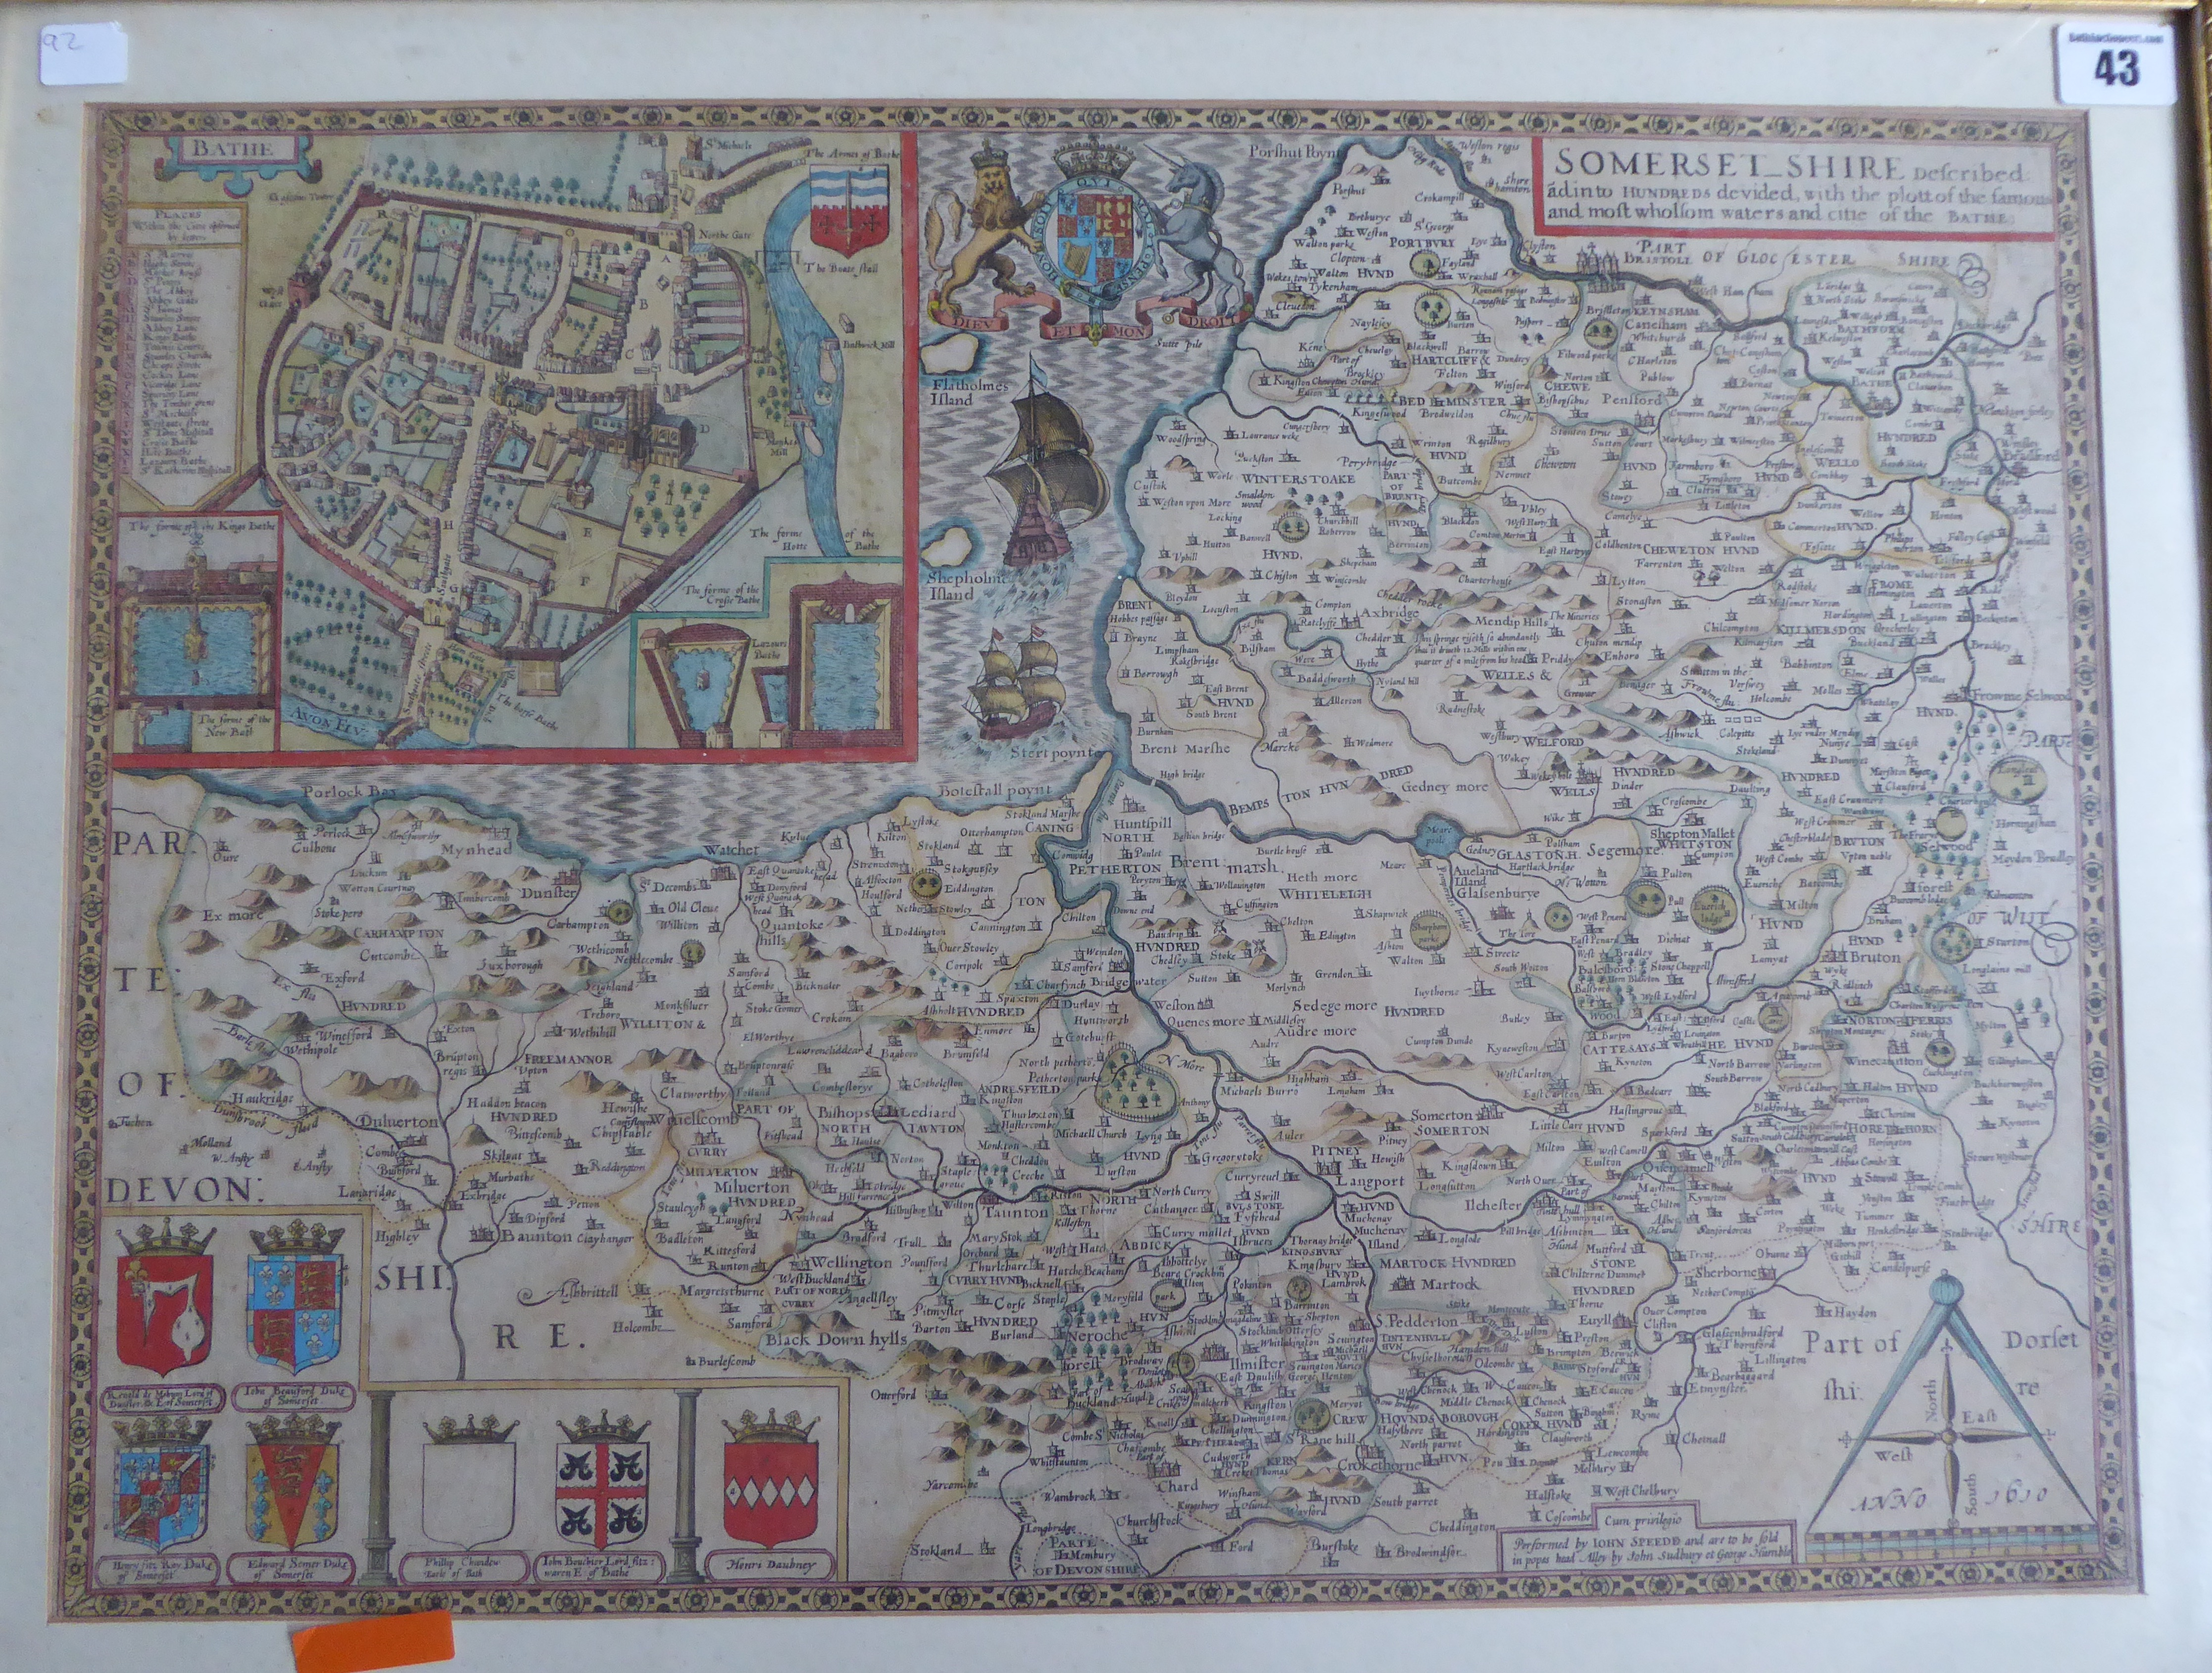 Lot 43 - A C17th hand coloured copper engraved map of Somerset c1629 by John Speed